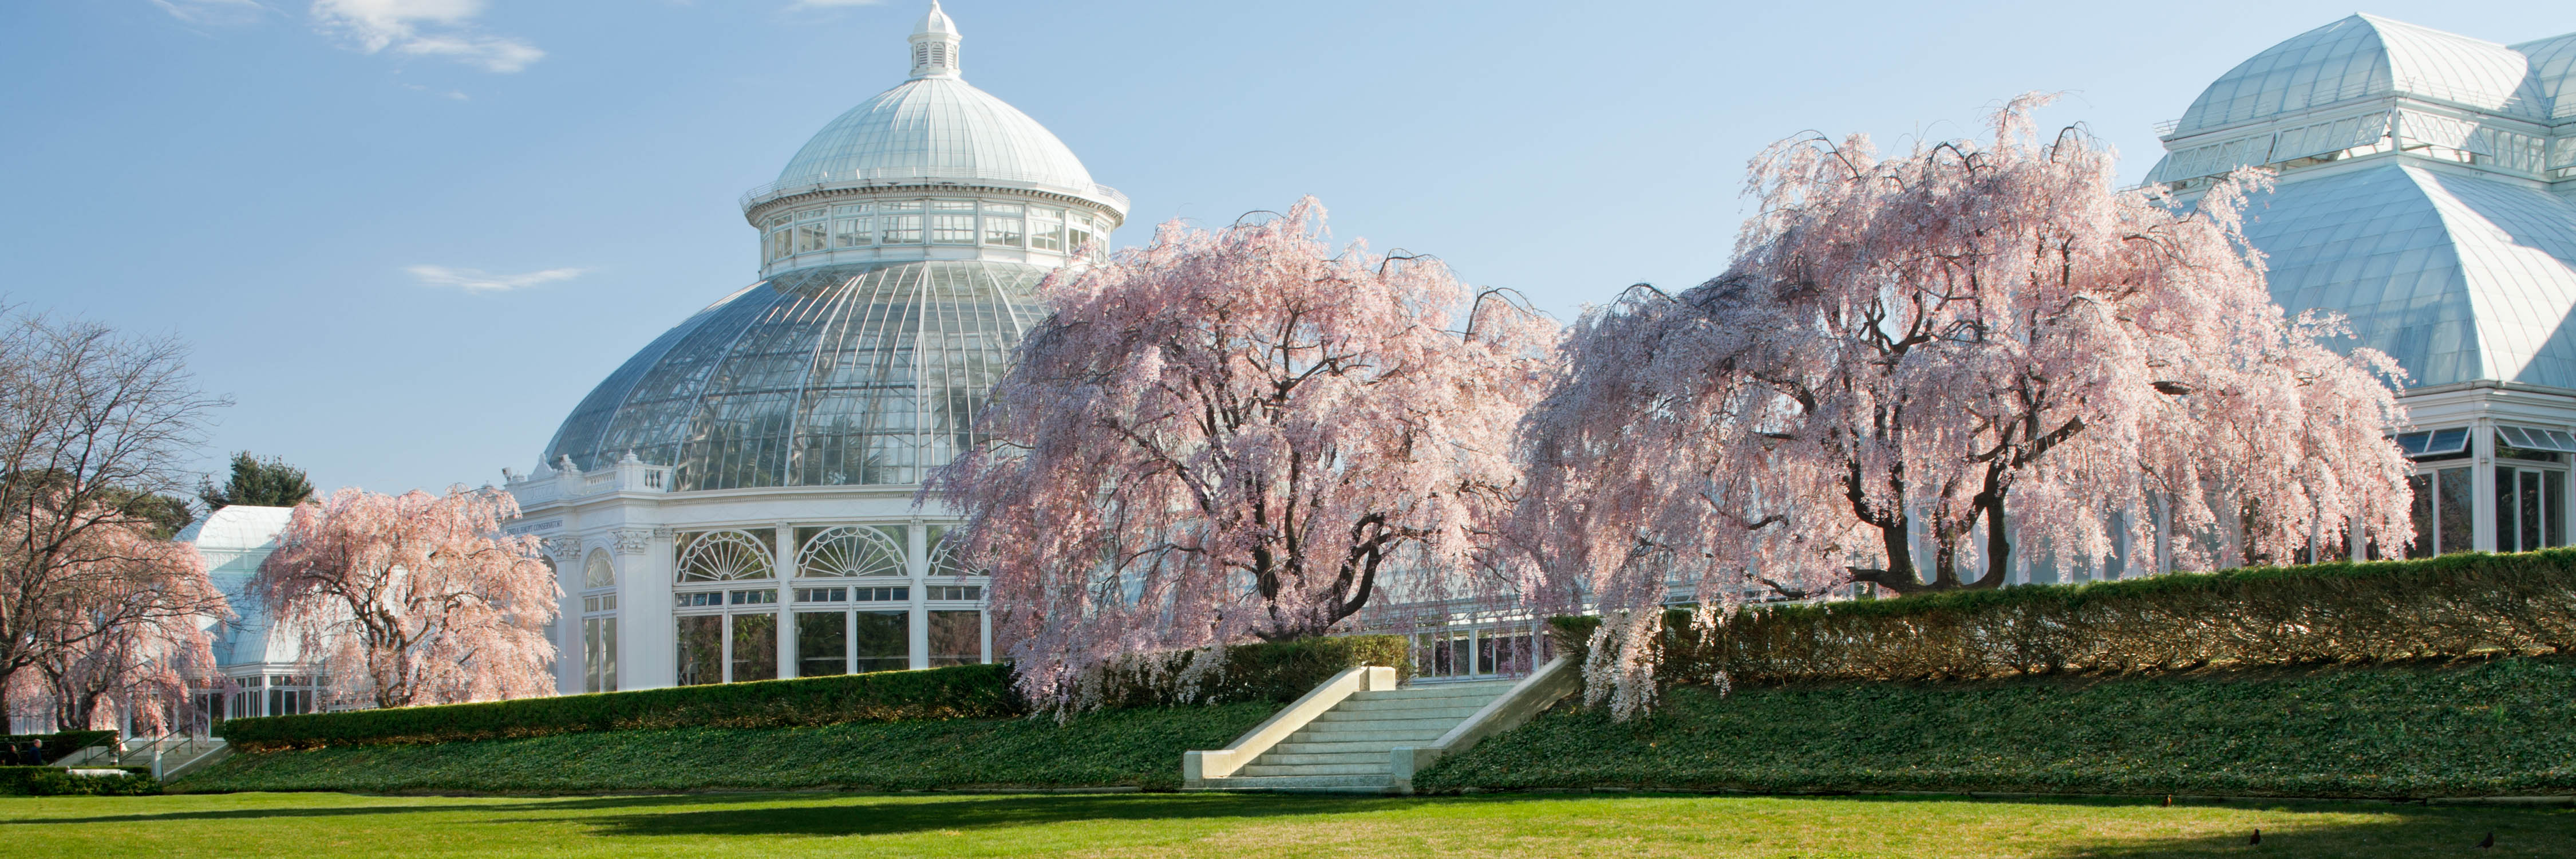 Conservatory with pink cherry trees in spring